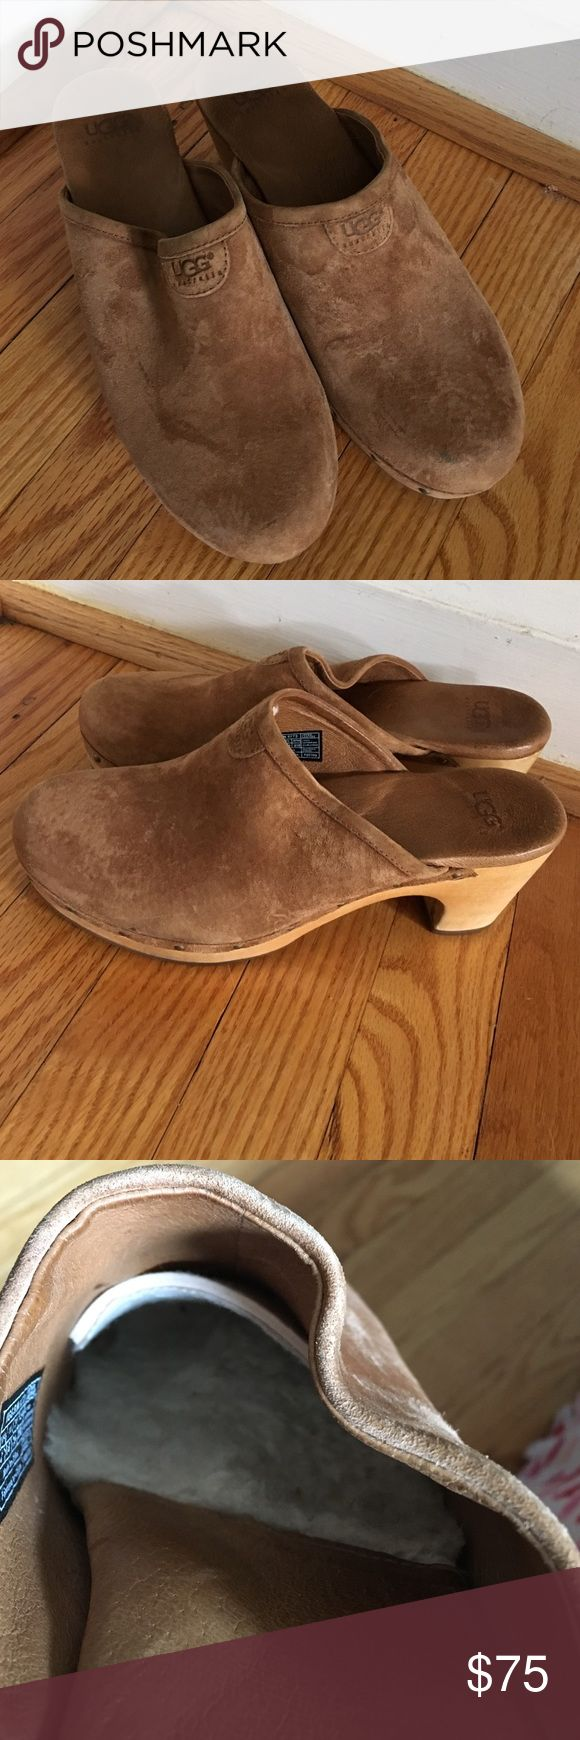 Very lightly worn(almost new ) Ugg clogs Camel colored Ugg clogs. Worn twice, soft inside fur! UGG Shoes Mules & Clogs